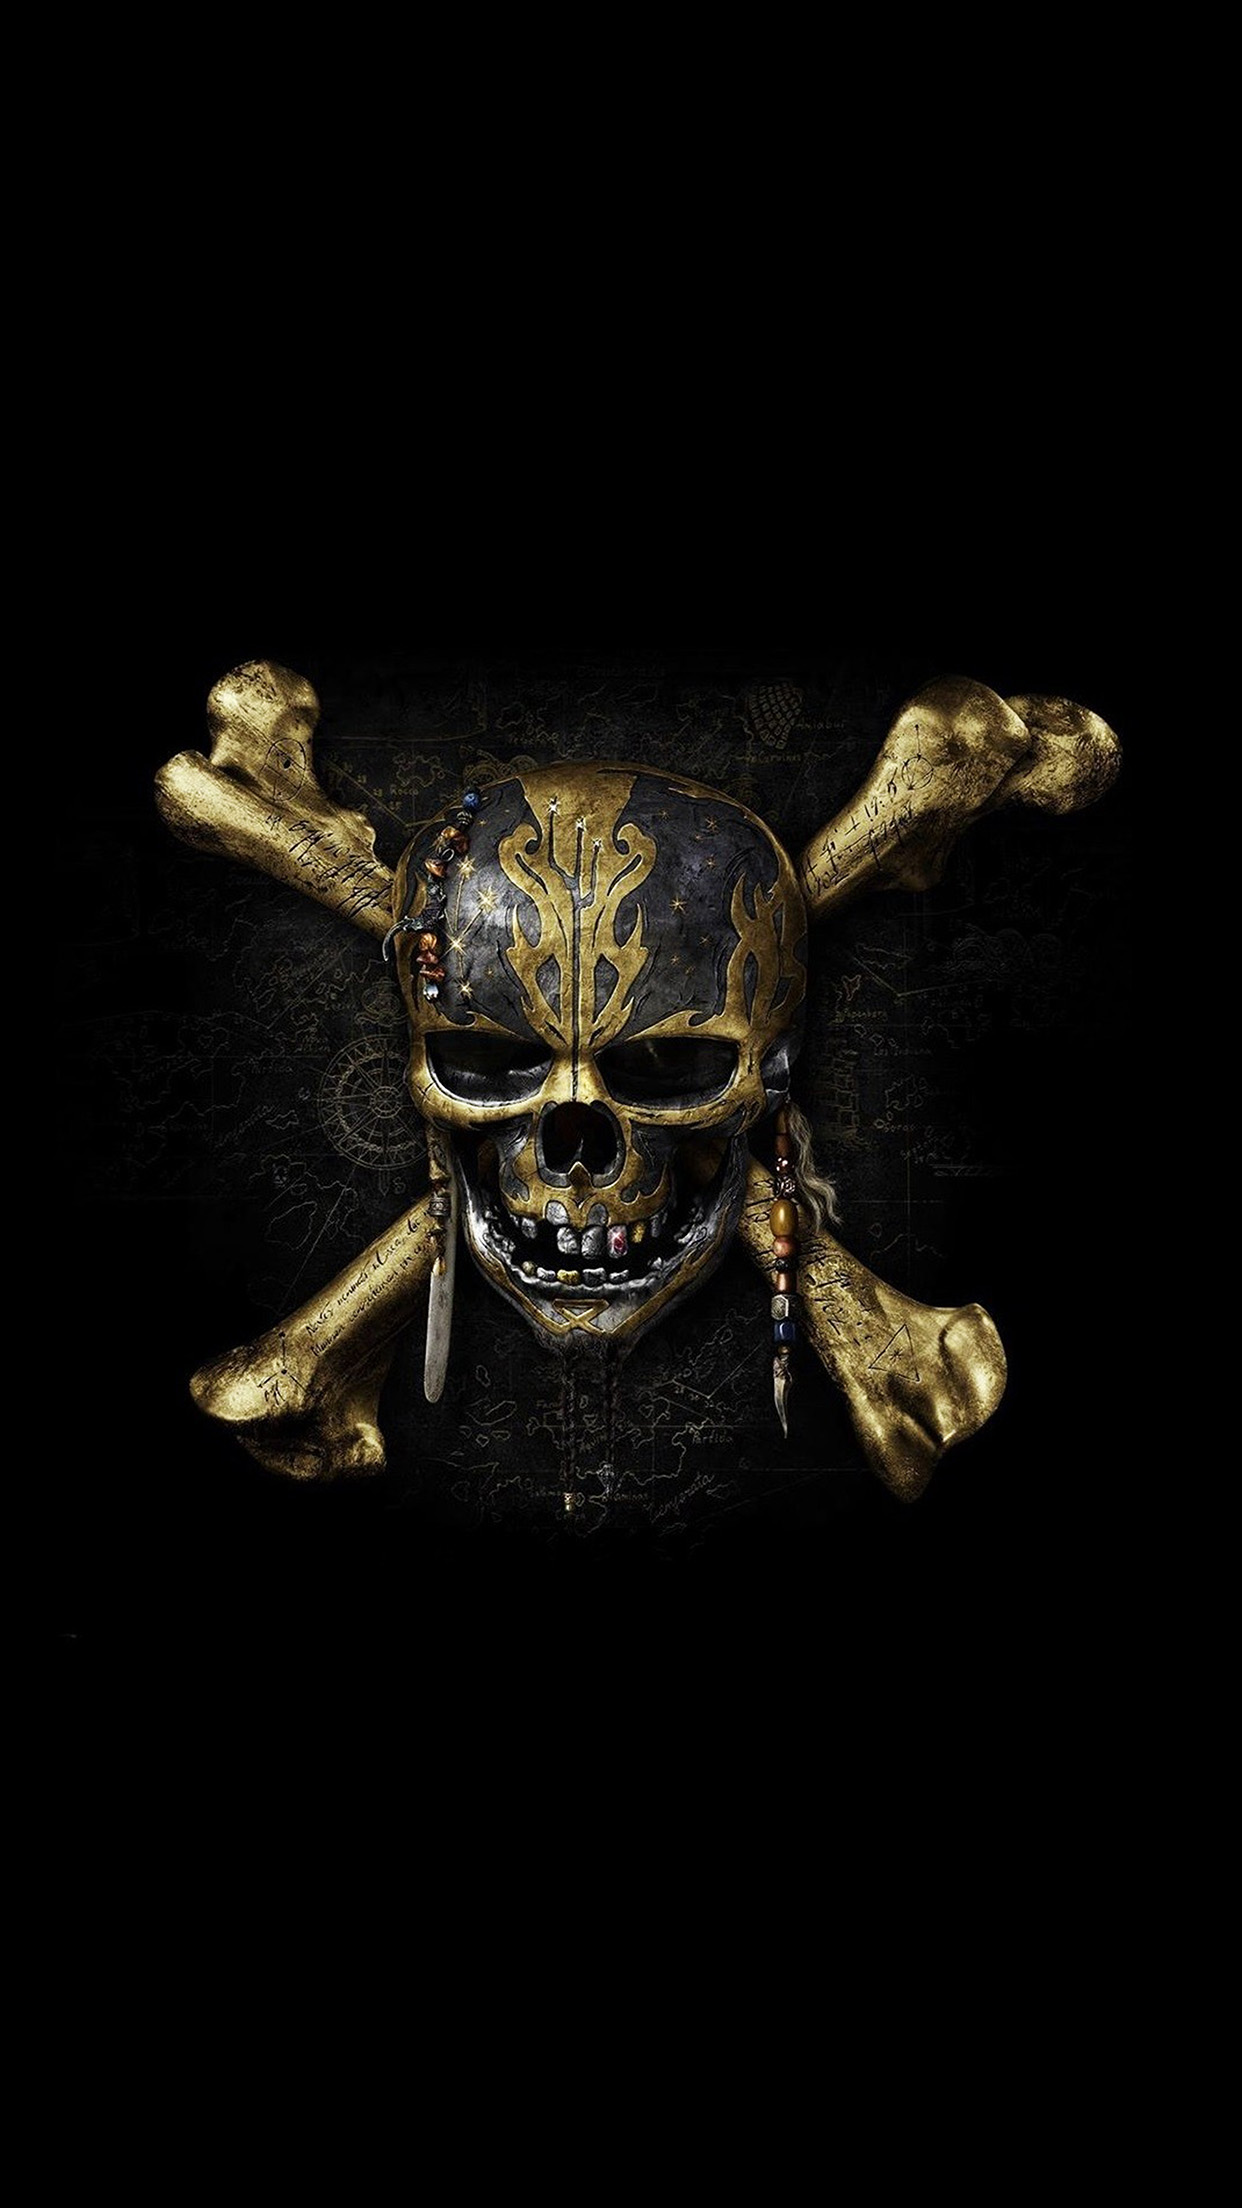 iphone7papers | iphone7 wallpaper | at83-pirates-dark-skull-art